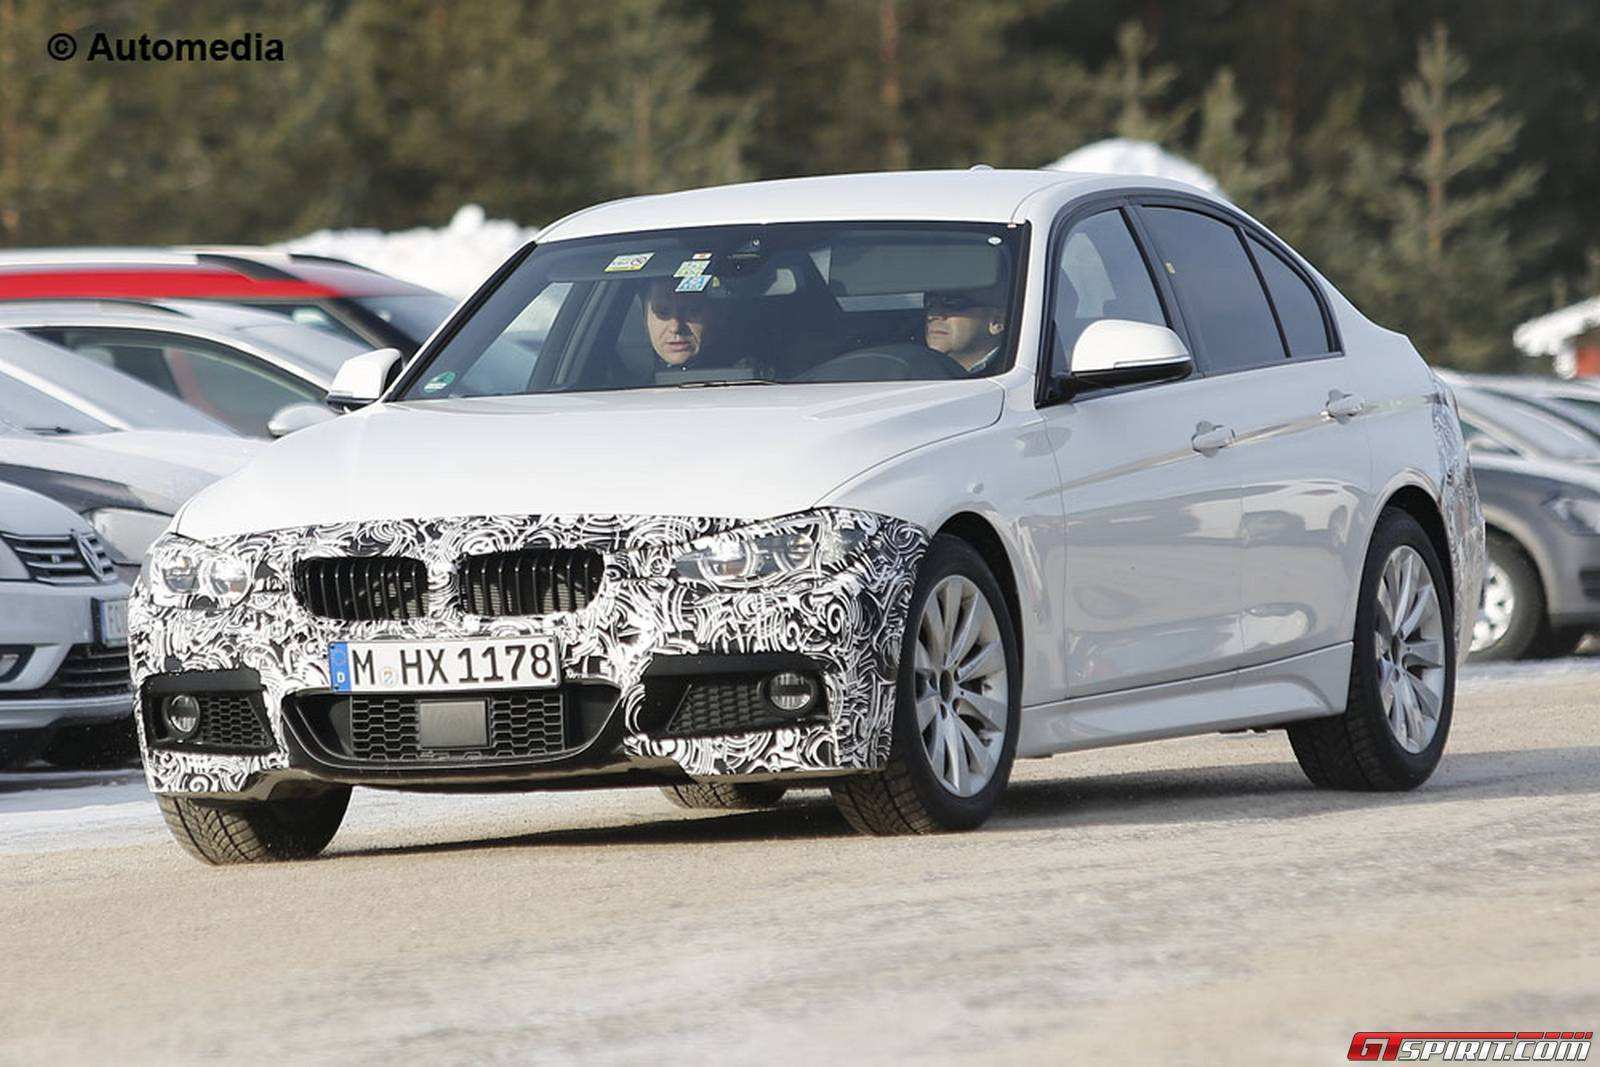 55 The Spy Shots BMW 3 Series Performance And New Engine